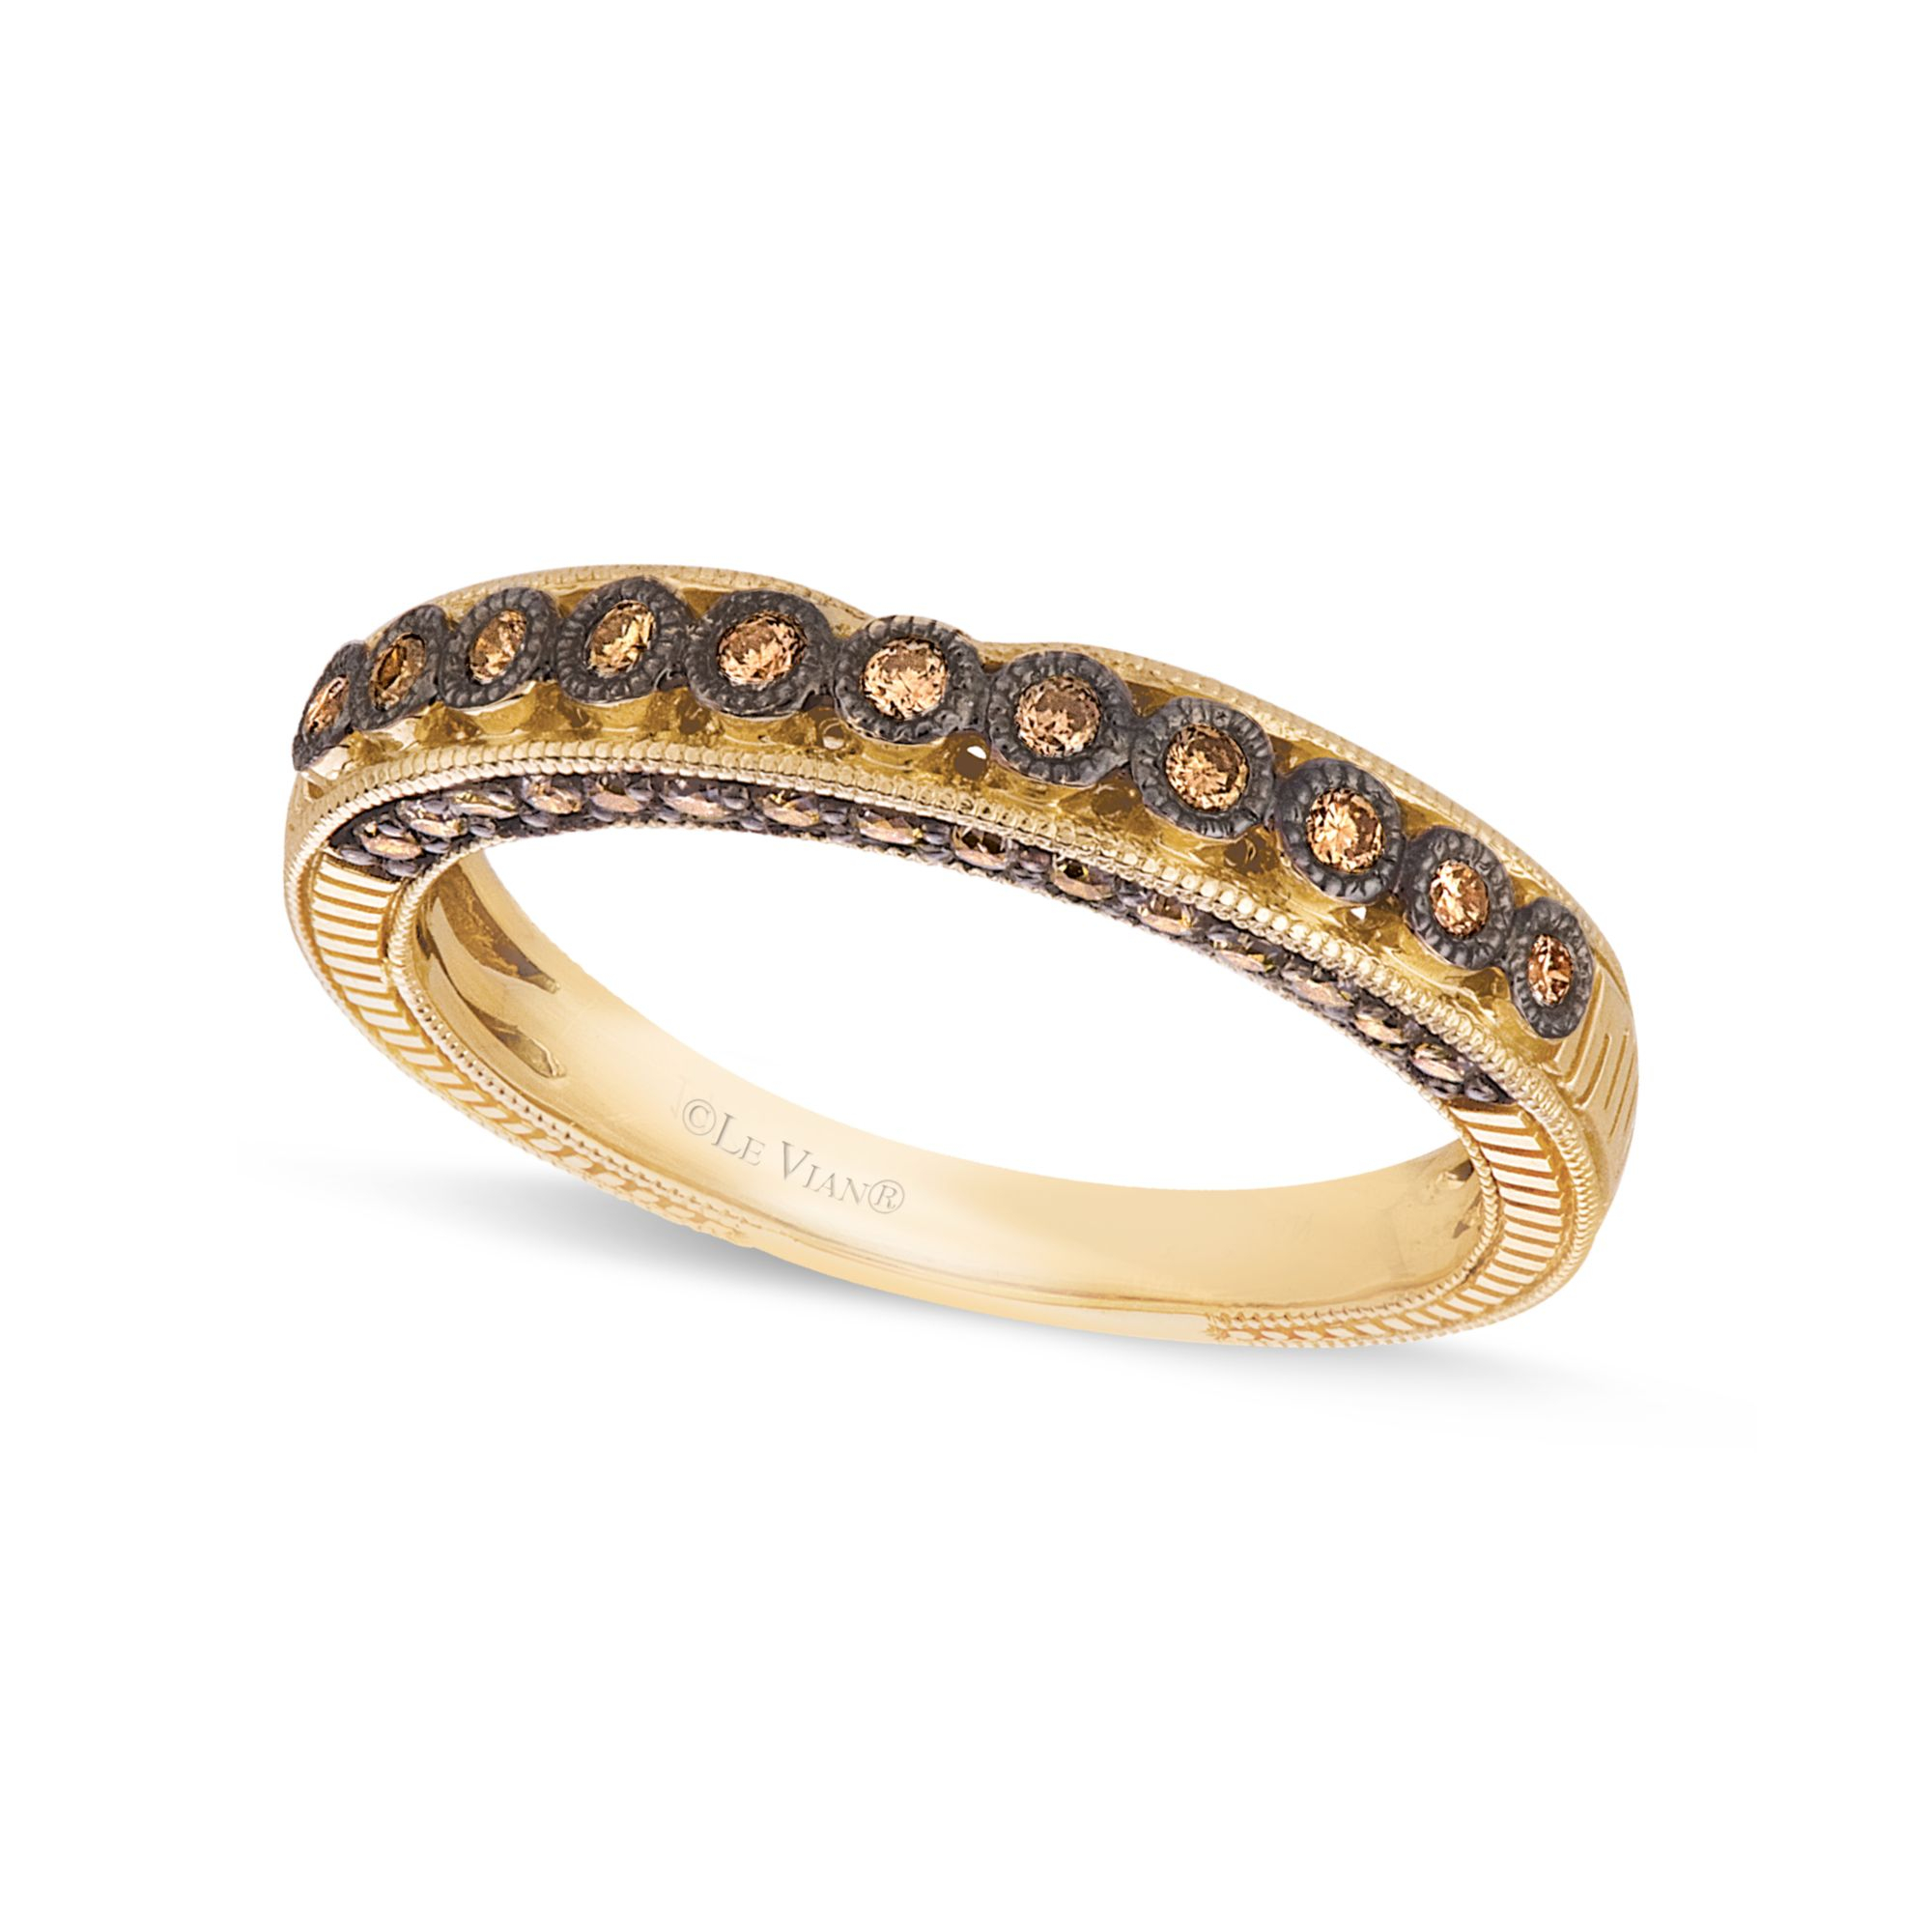 Le Vian Women39;s Brown Chocolate Diamond Wedding Band 1/4 C. T.w. In